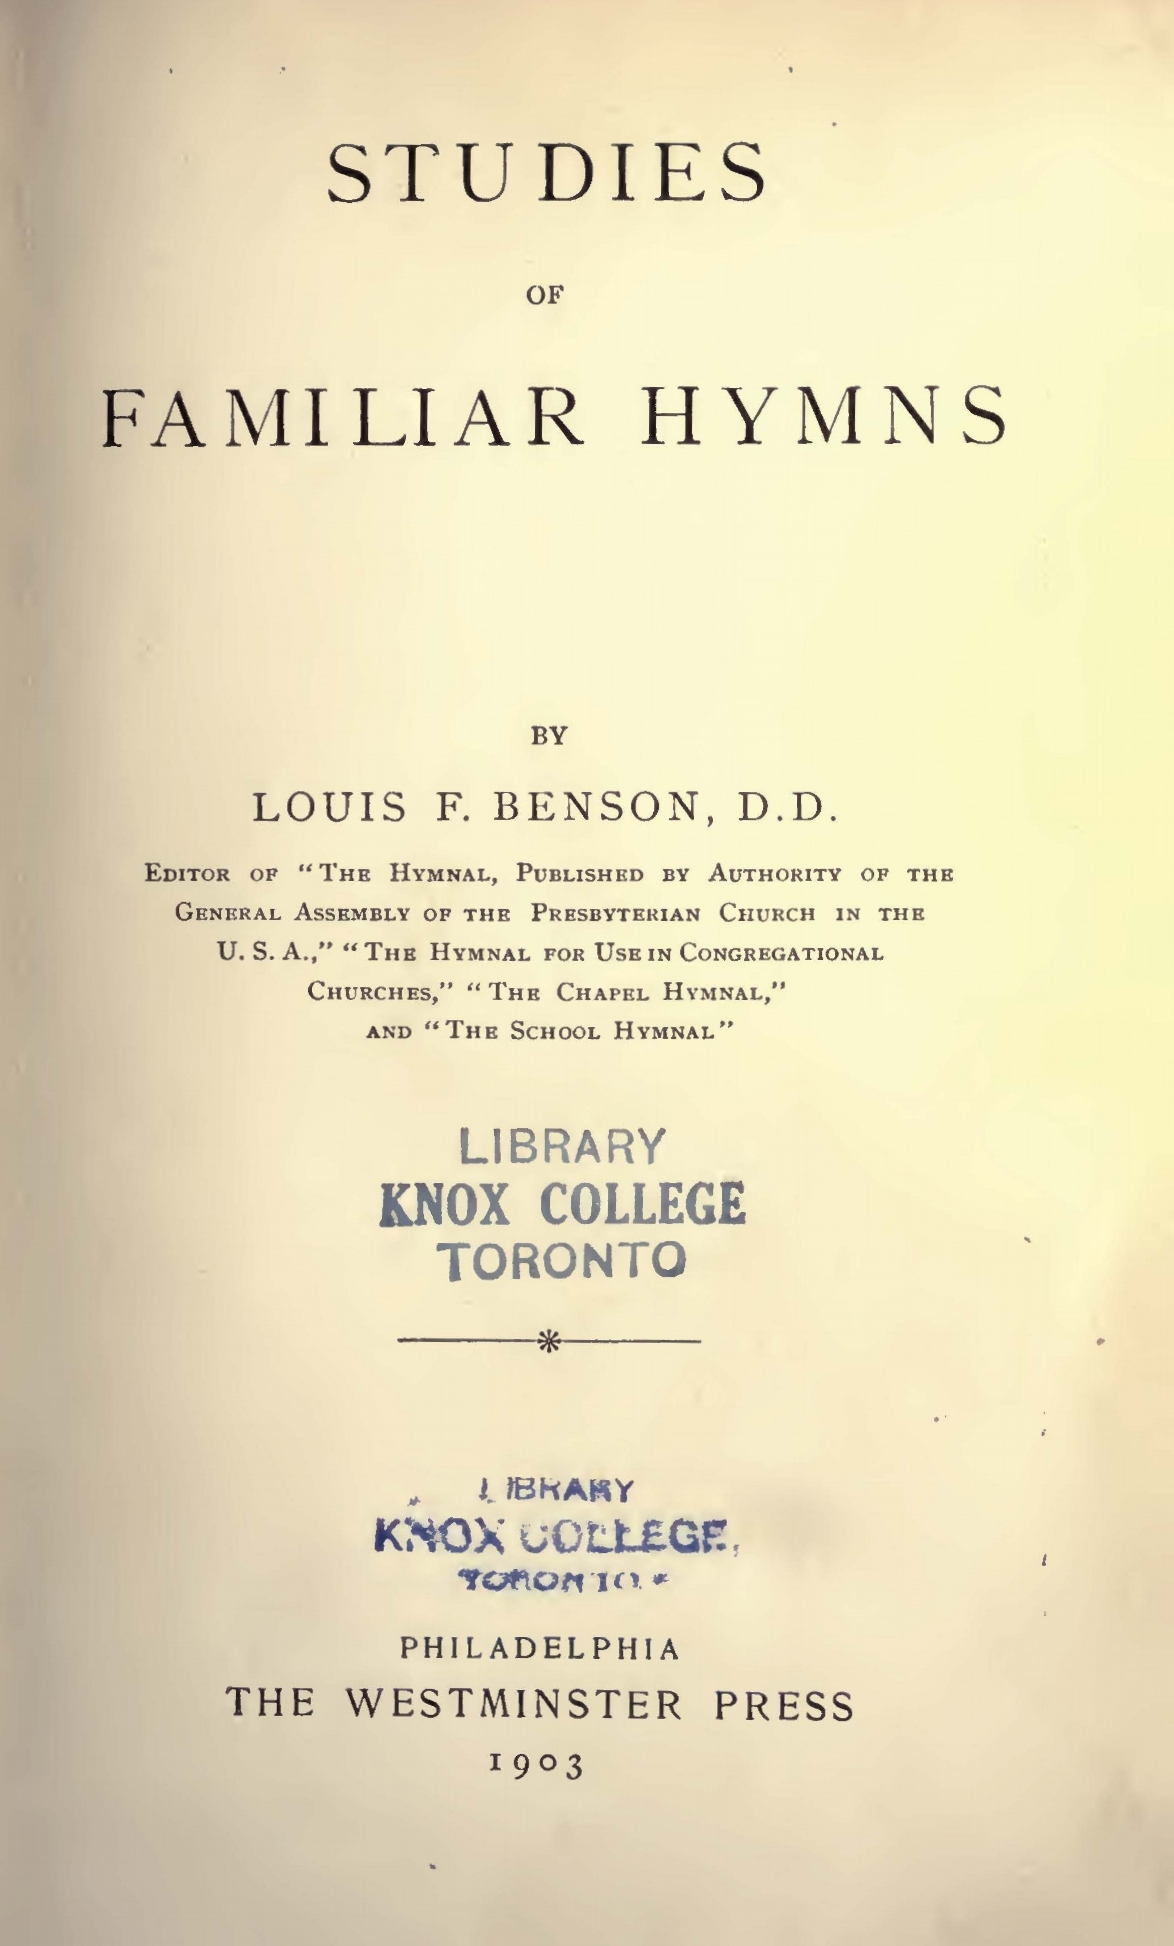 Benson, Louis FitzGerald, Studies of Familiar Hymns Title Page.jpg